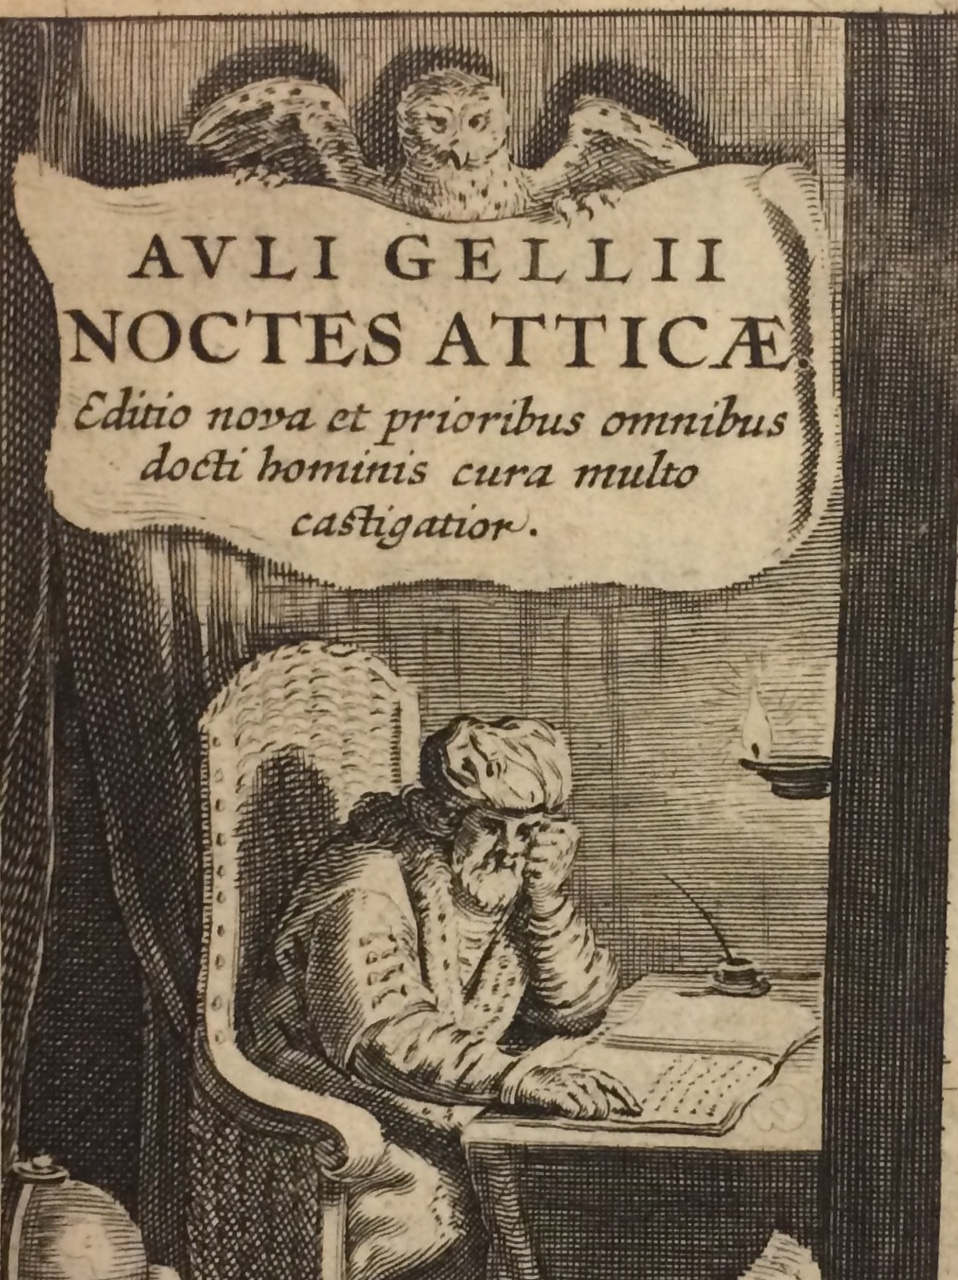 Image of a man reading a book with an owl over his head.